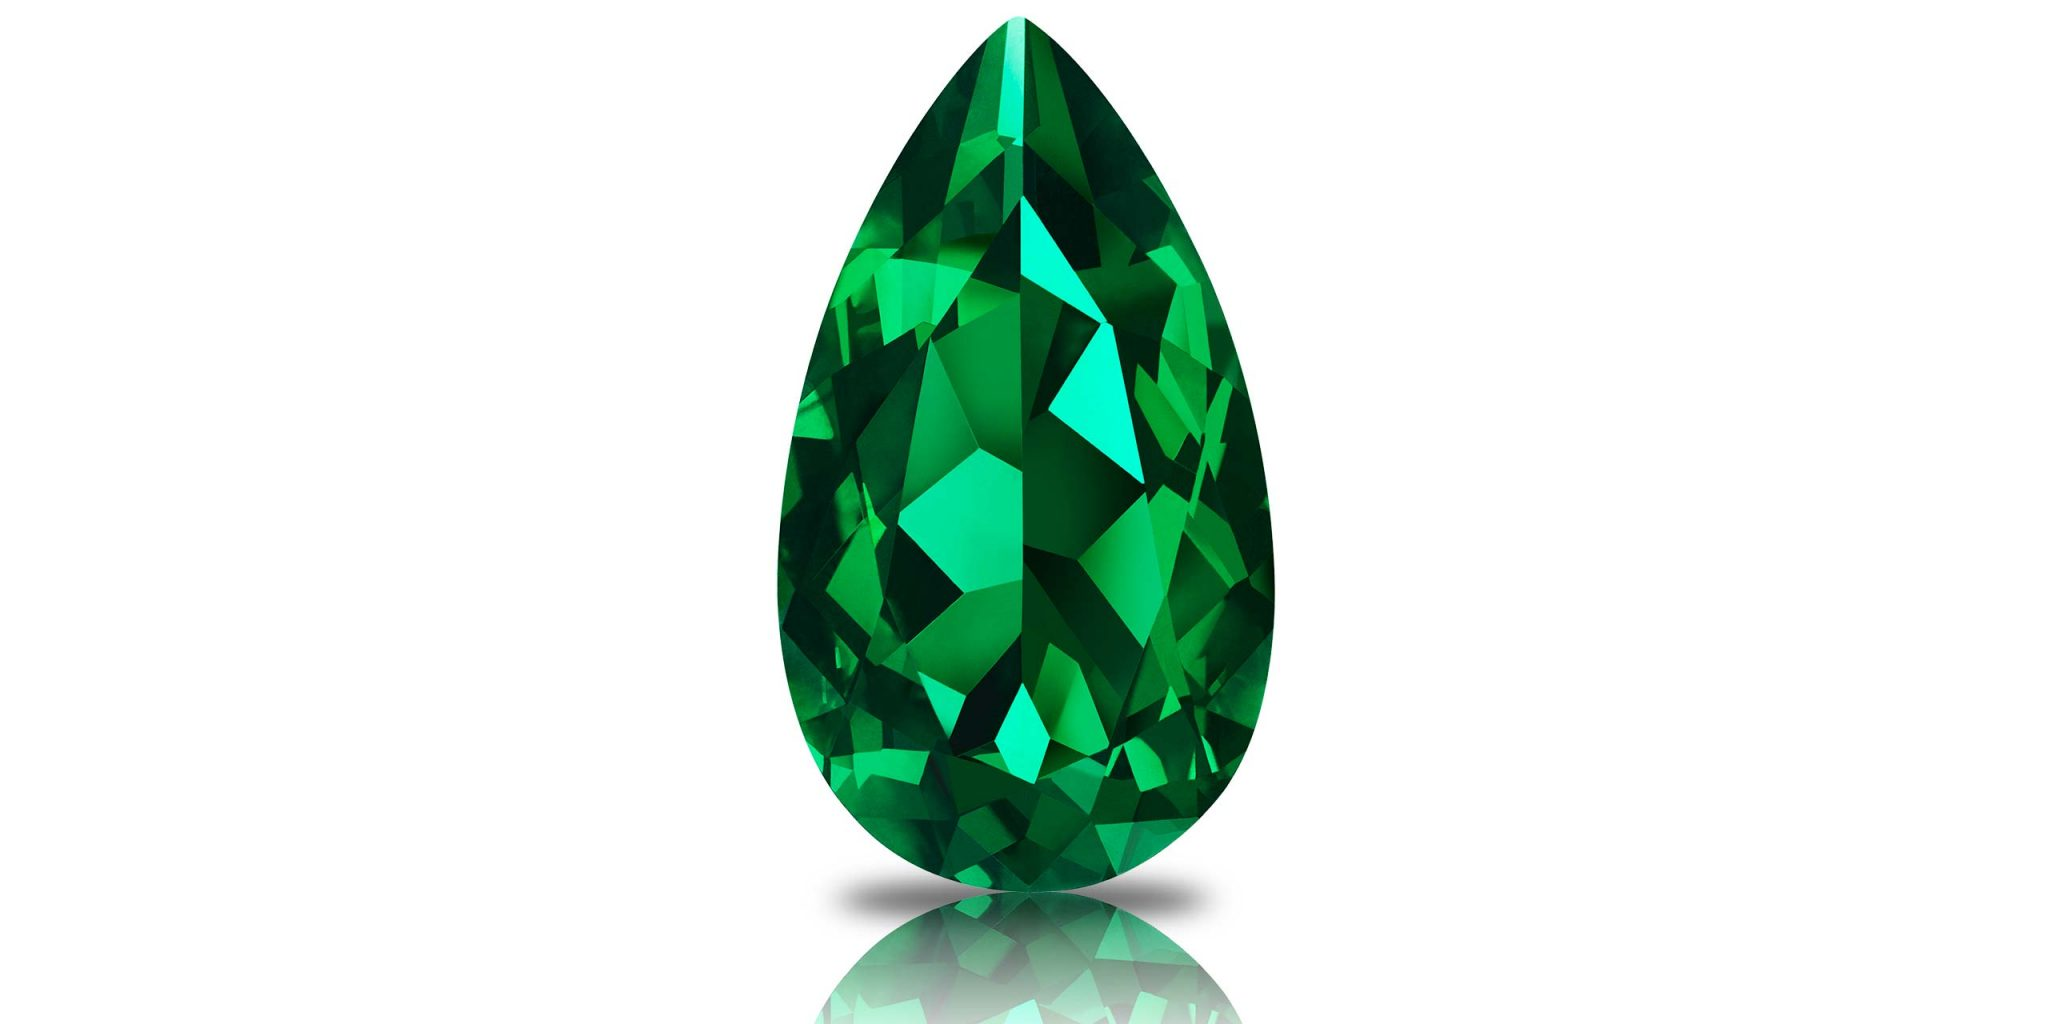 depositphotos by stock crystal precious luxury stone fashion diamond jewel photo jewelry gem emerald